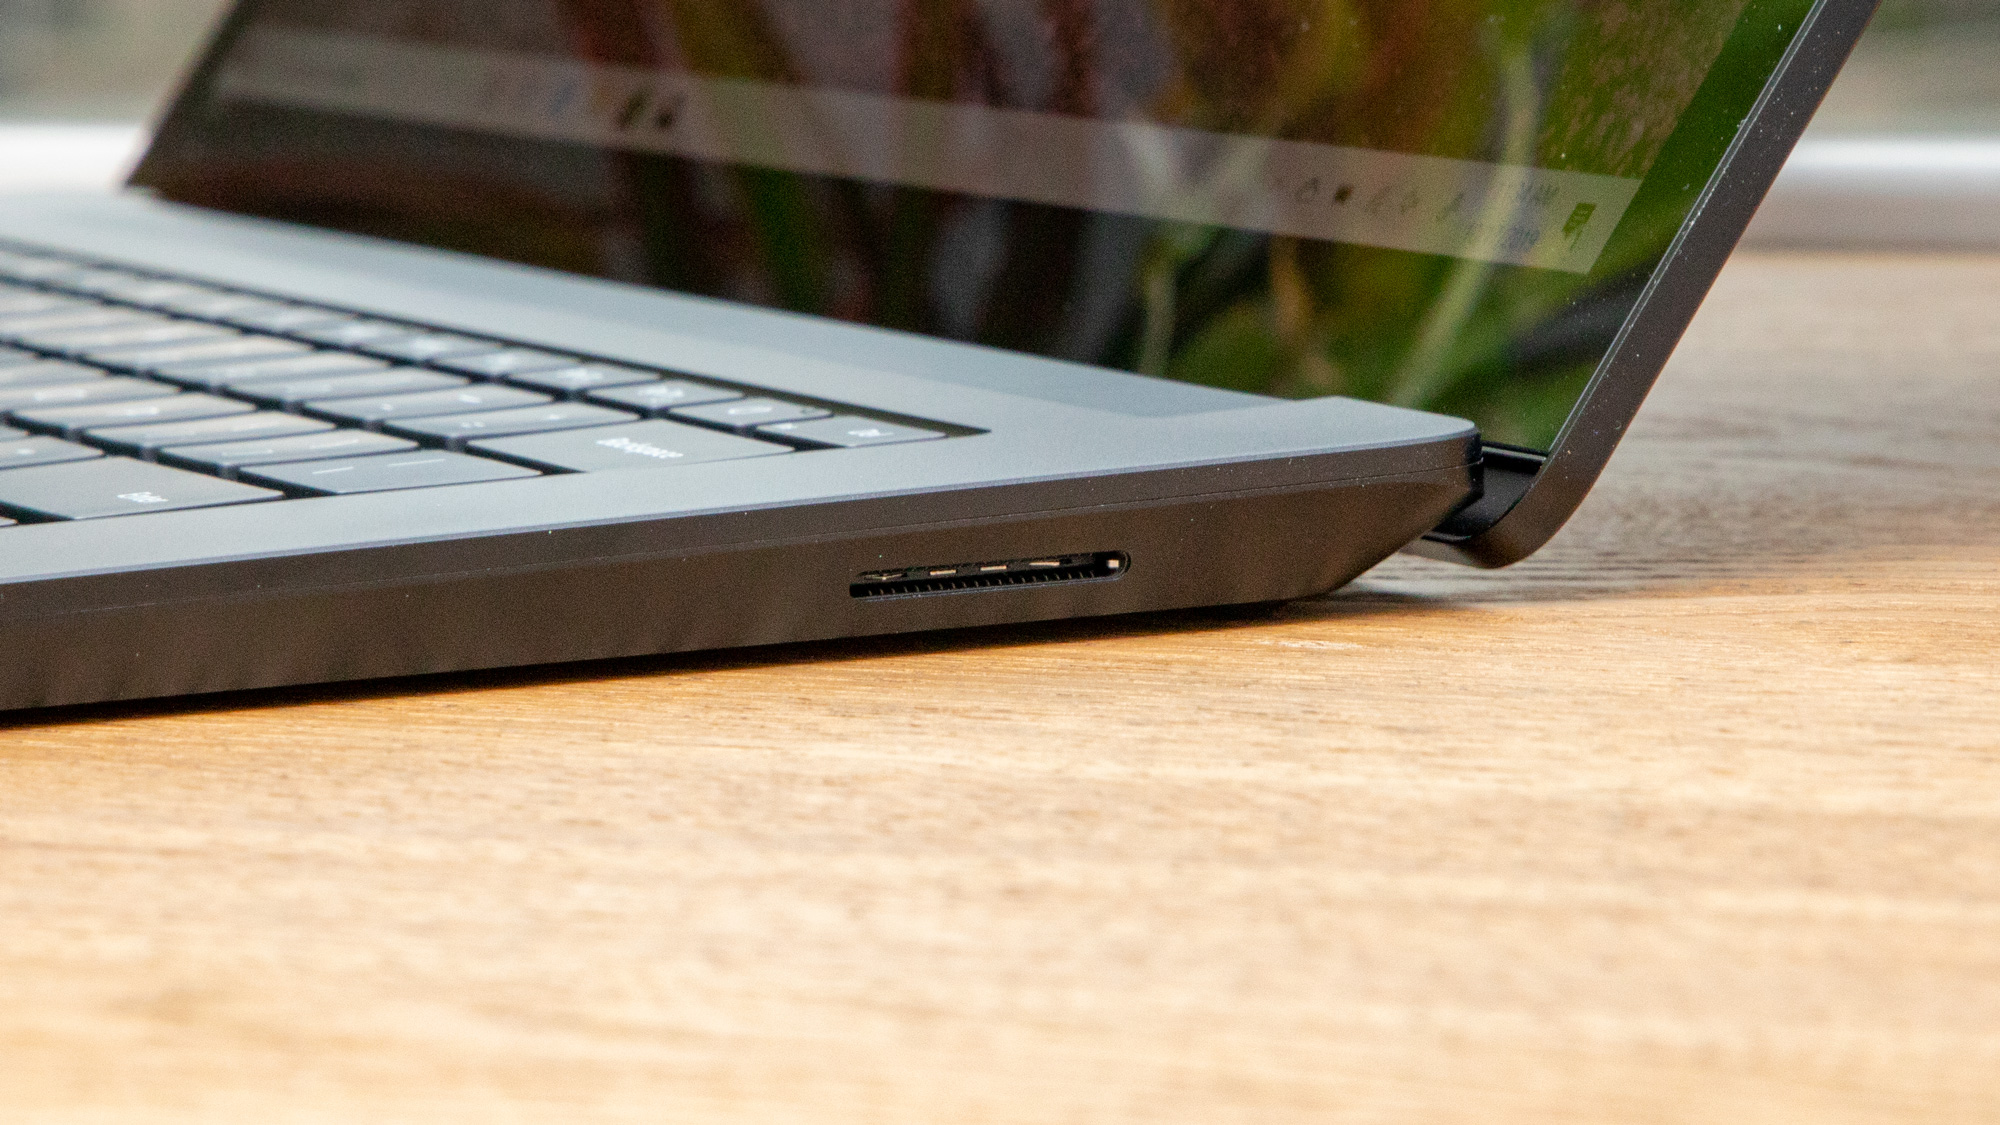 It's going to be tough for most competing laptops in its class to defeat the Surface Laptop 3 in lasting power.